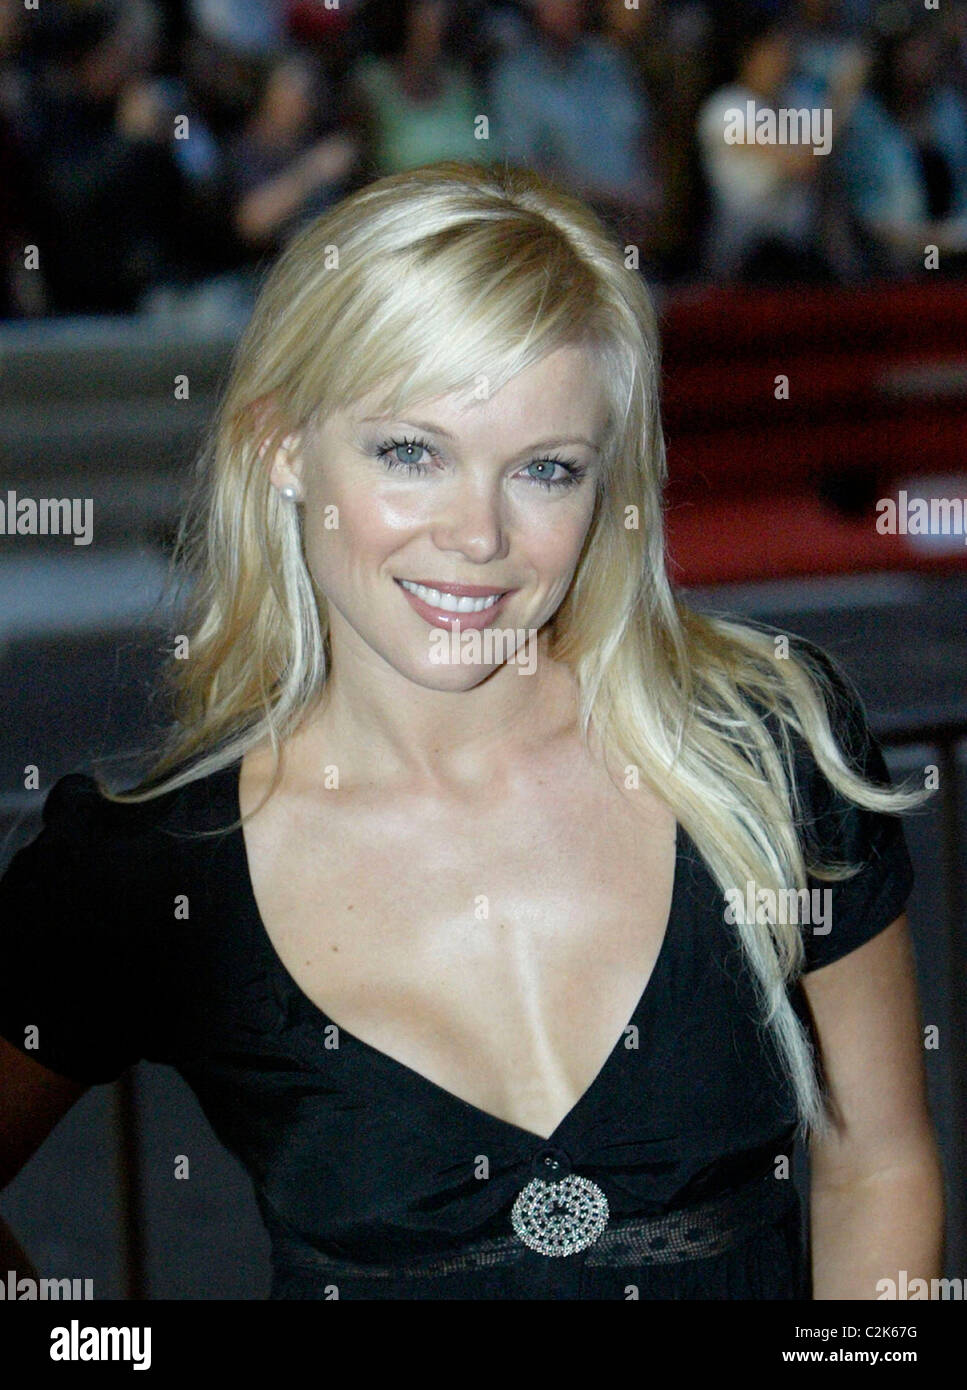 Holly Brisley nude (78 foto and video), Tits, Hot, Feet, panties 2019